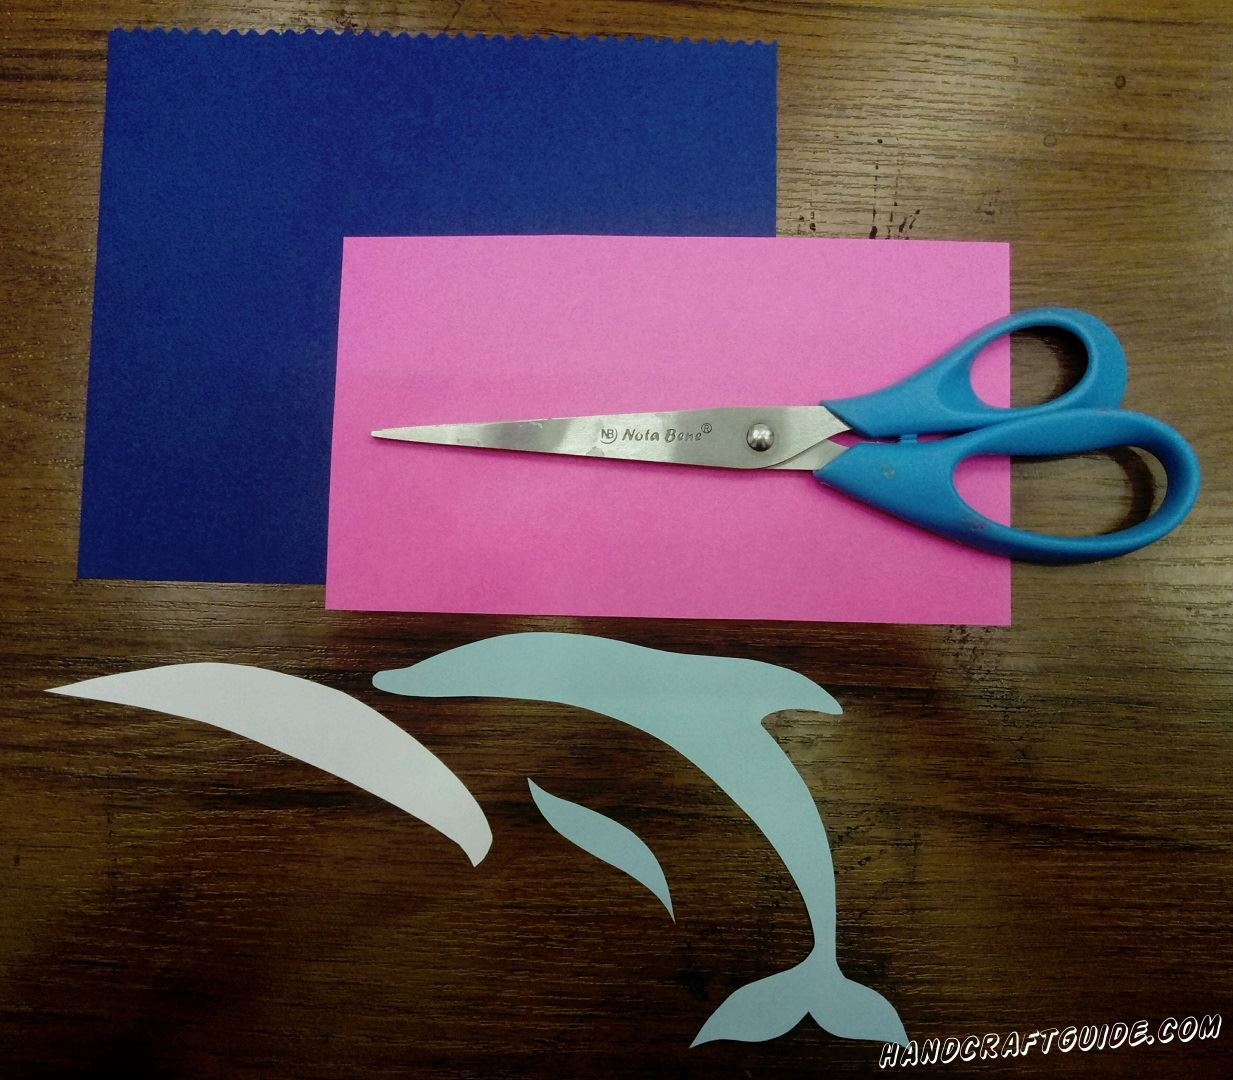 First, take a blue paper and scissors. Cut out a thin body of your dolphin and a small wavy fin. Also cut out a blue belly for your dolphin that perfectly fits the body. Well done. Now using figured scissors cut off a strip from a blue sheet of paper. If you don't have figured scissors use regular scissors and make waves.